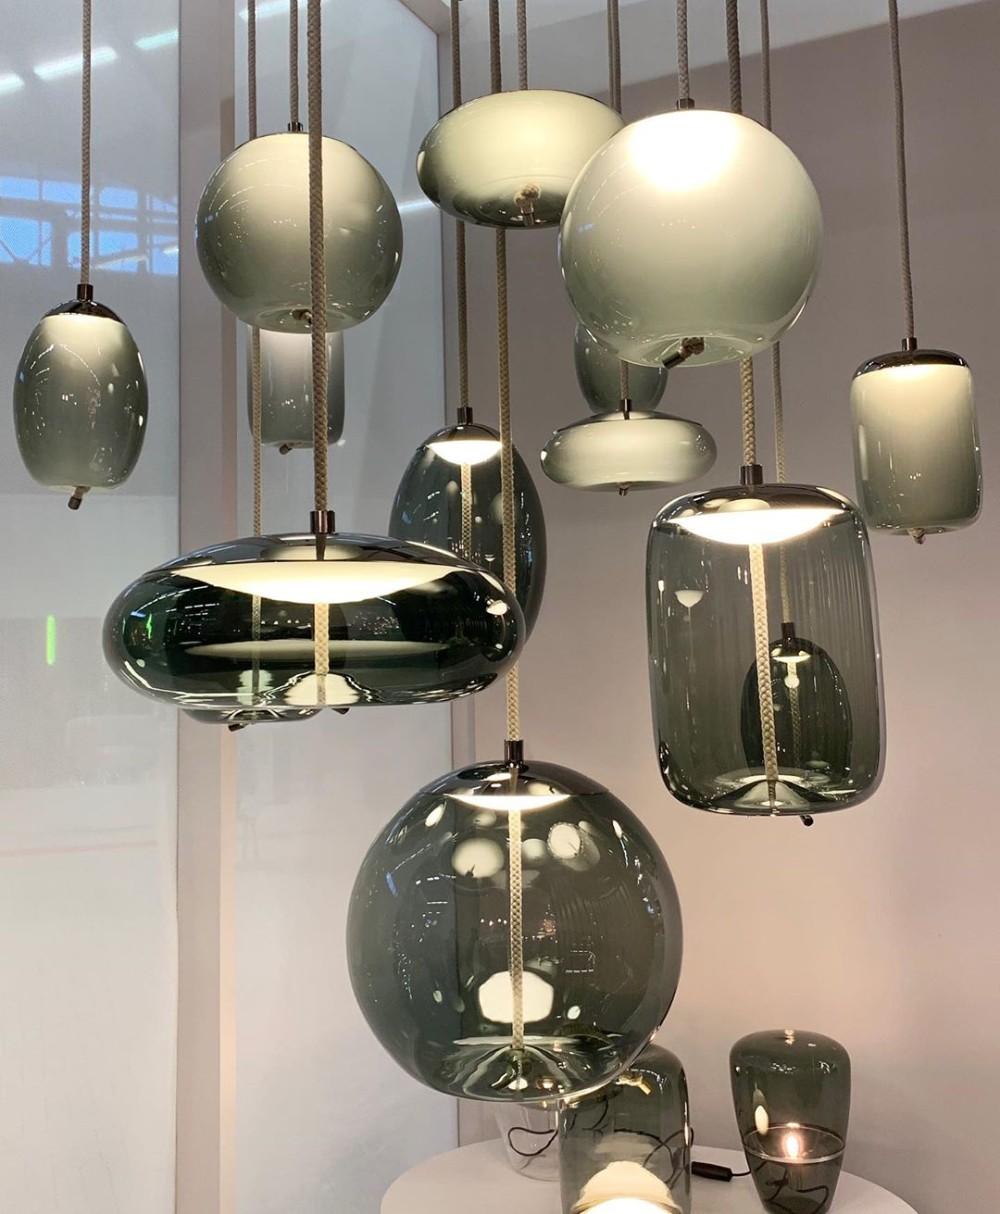 The Best News & Trends Already Spotted at Maison et Objet 2020 31 (1) maison et objet The Best News & Trends Already Spotted at Maison et Objet 2020 The Best News Trends Already Spotted at Maison et Objet 2020 31 1